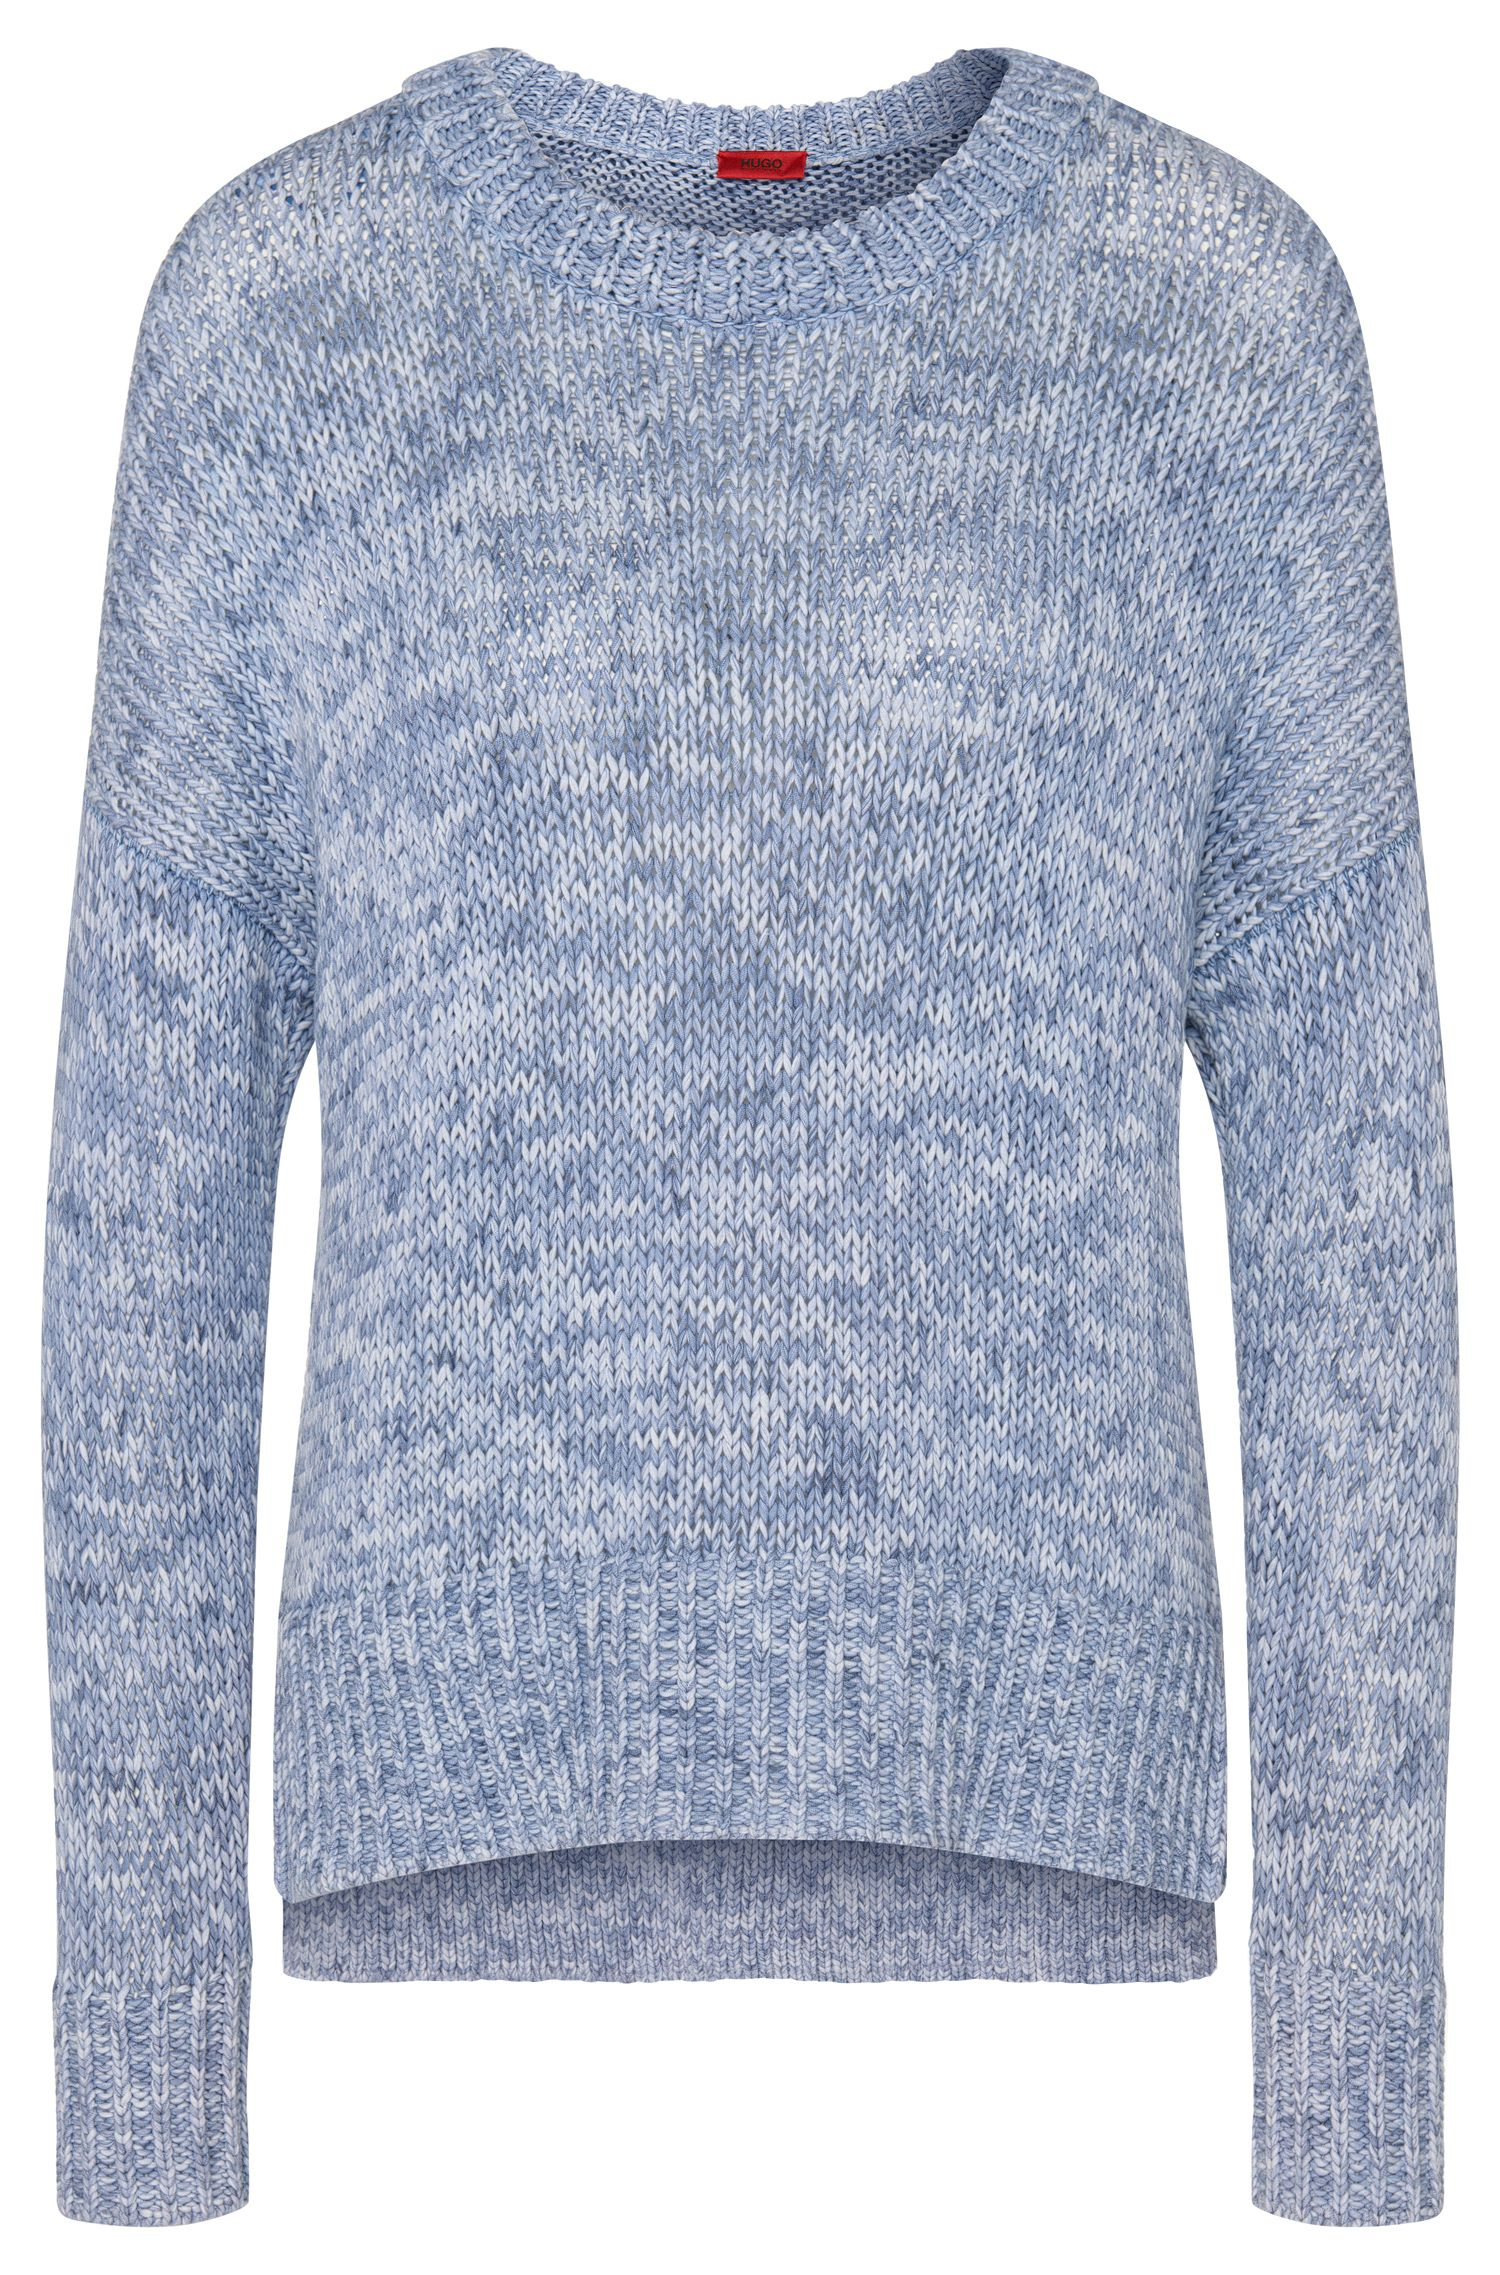 Mottled sweater in pure cotton: 'Sheilah'